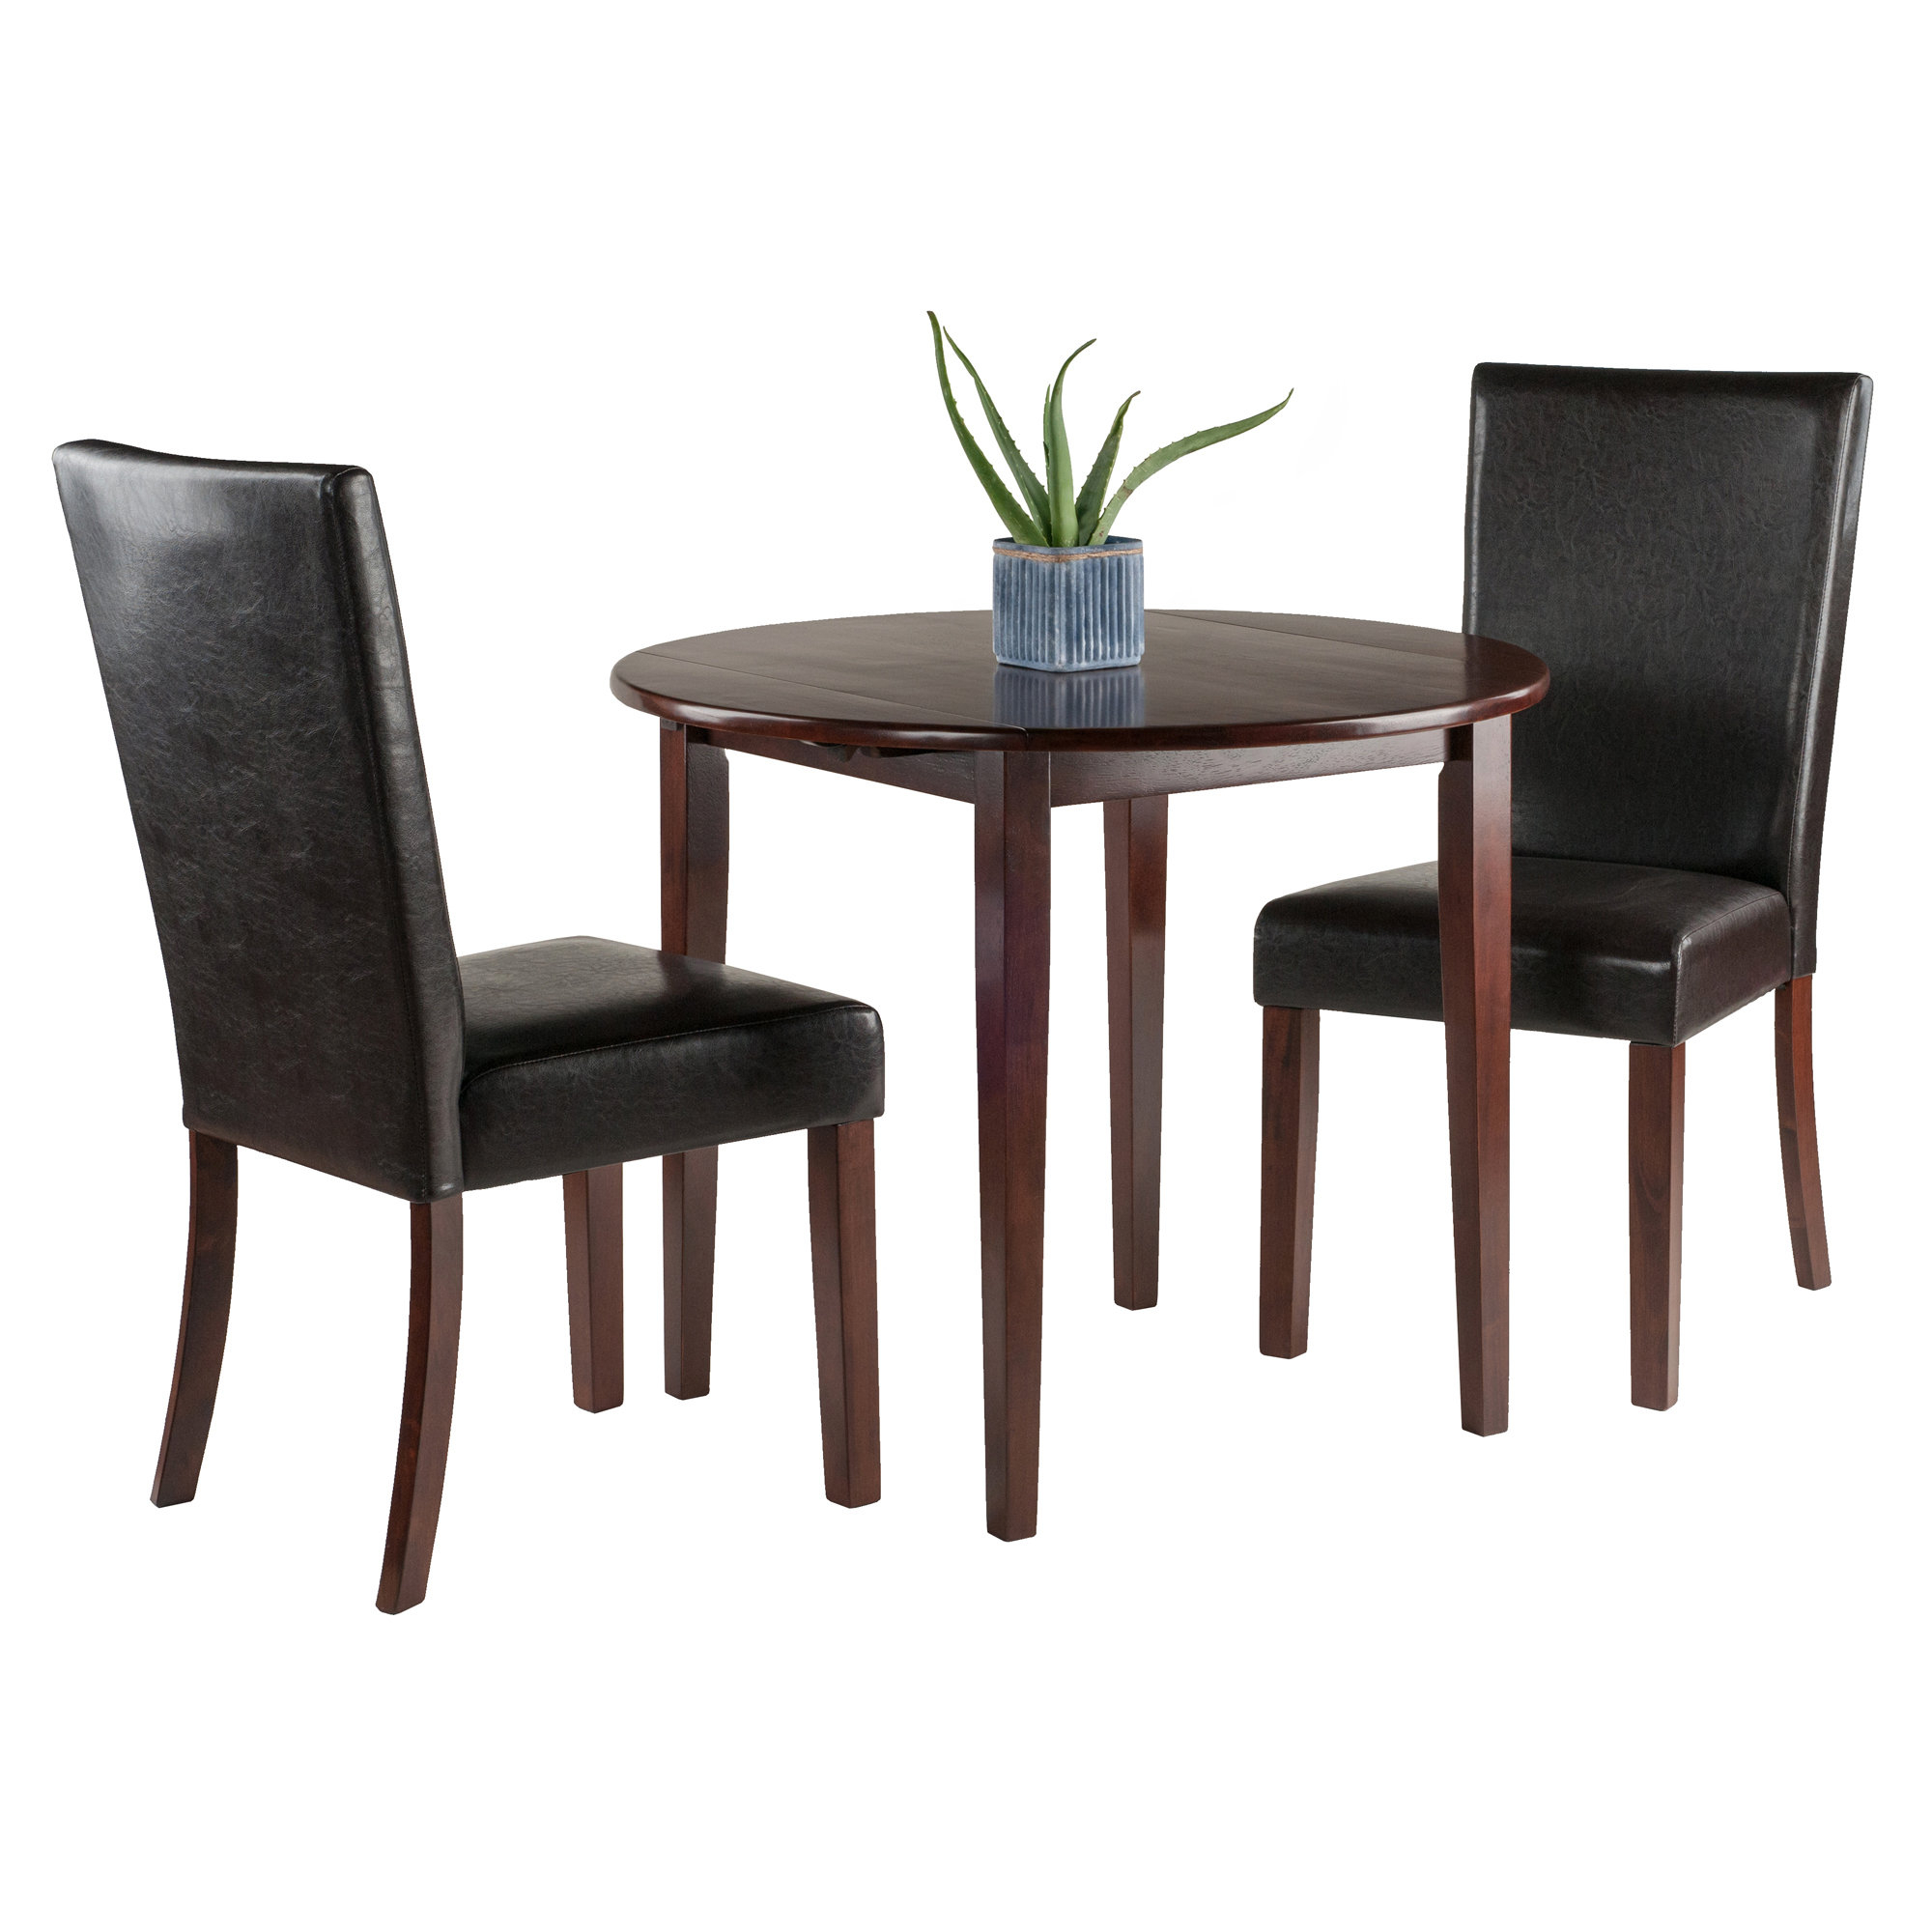 Baillie 3 Piece Dining Sets Within Most Current Kendall Traditional 3 Piece Drop Leaf Dining Set (Gallery 18 of 20)